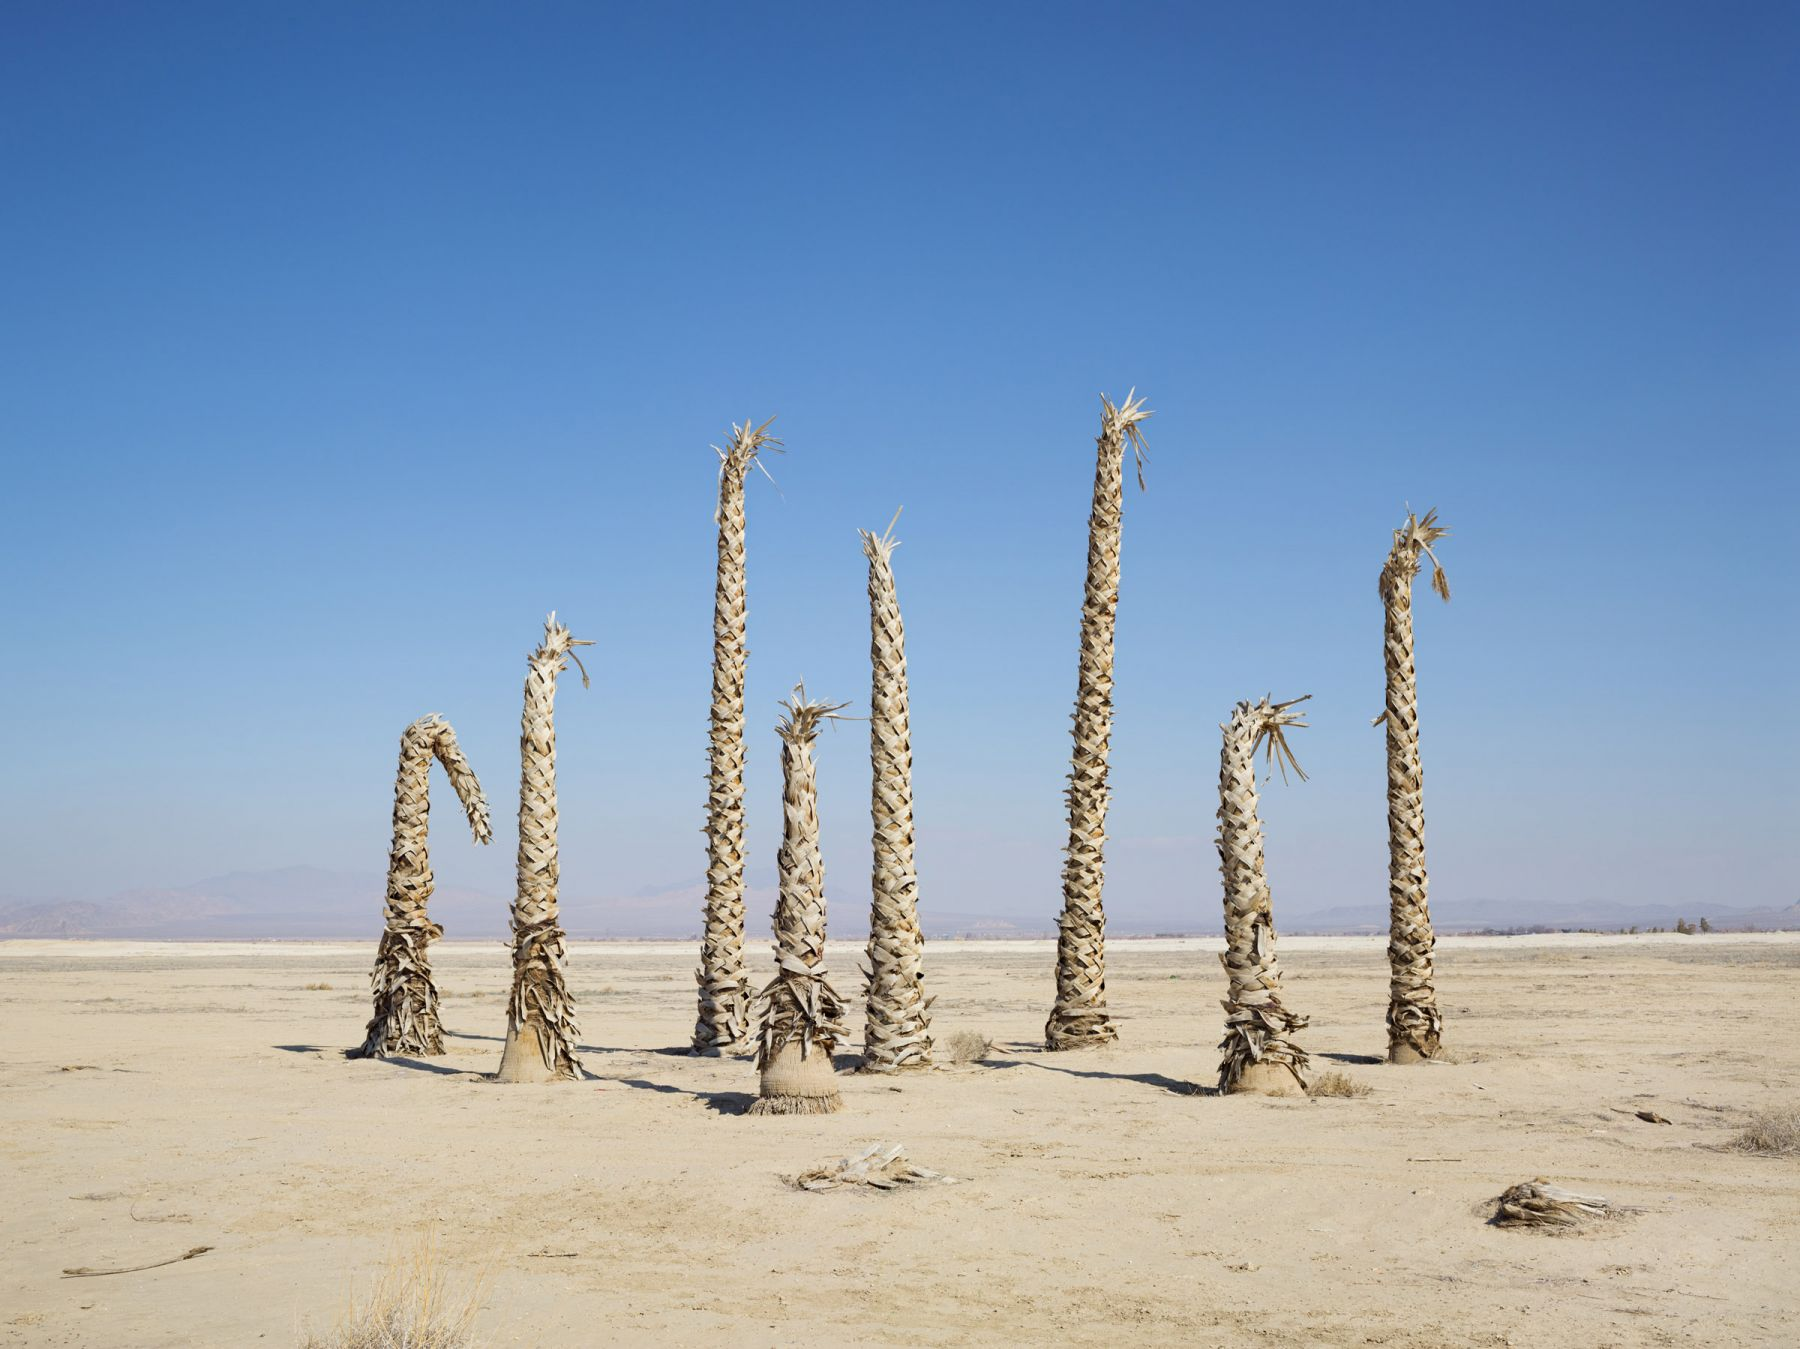 LUCAS FOGLIAPalm Trees without Water, California, 2014